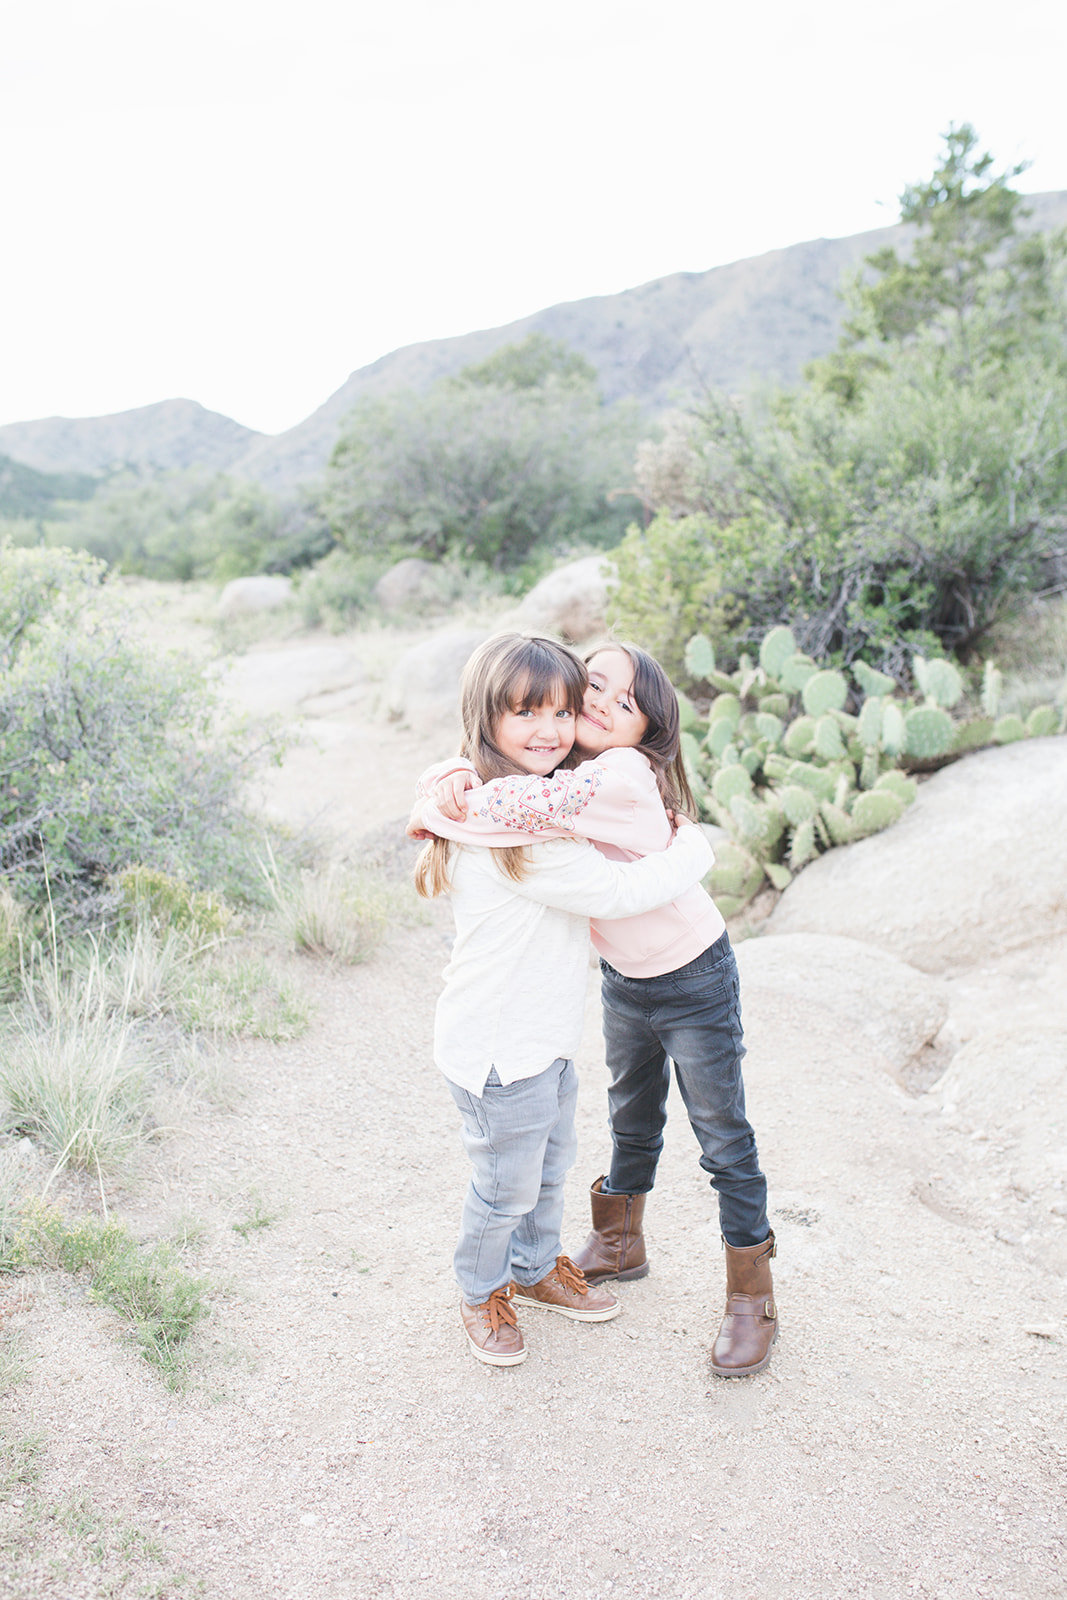 Albuquerque Outdoors Family Photographer_www.tylerbrooke.com_Kate Kauffman_003